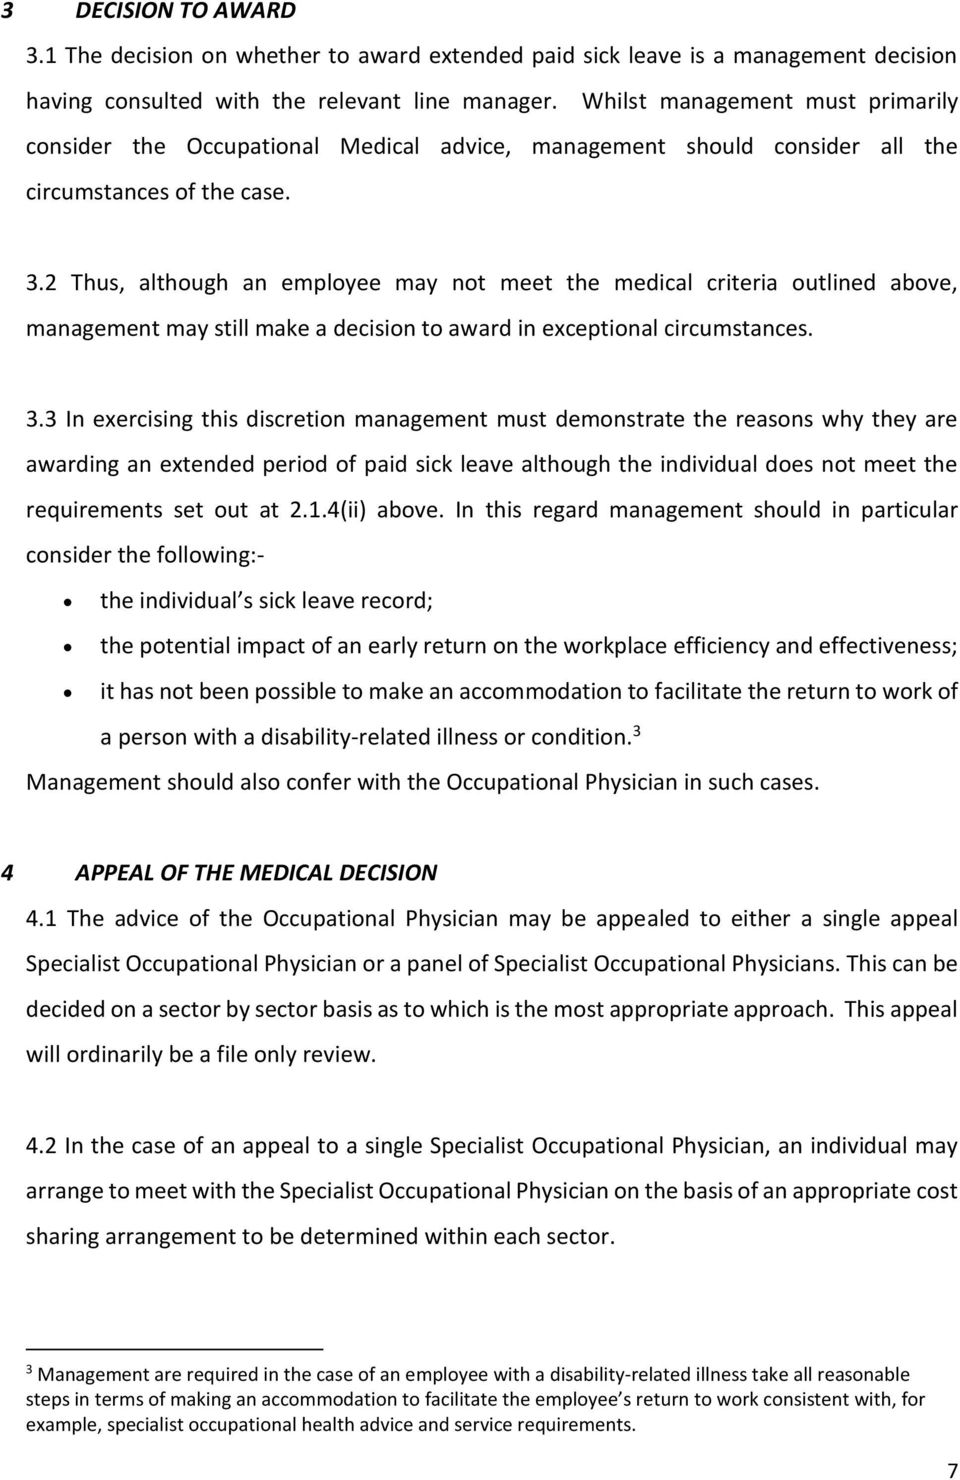 2 Thus, although an employee may not meet the medical criteria outlined above, management may still make a decision to award in exceptional circumstances. 3.